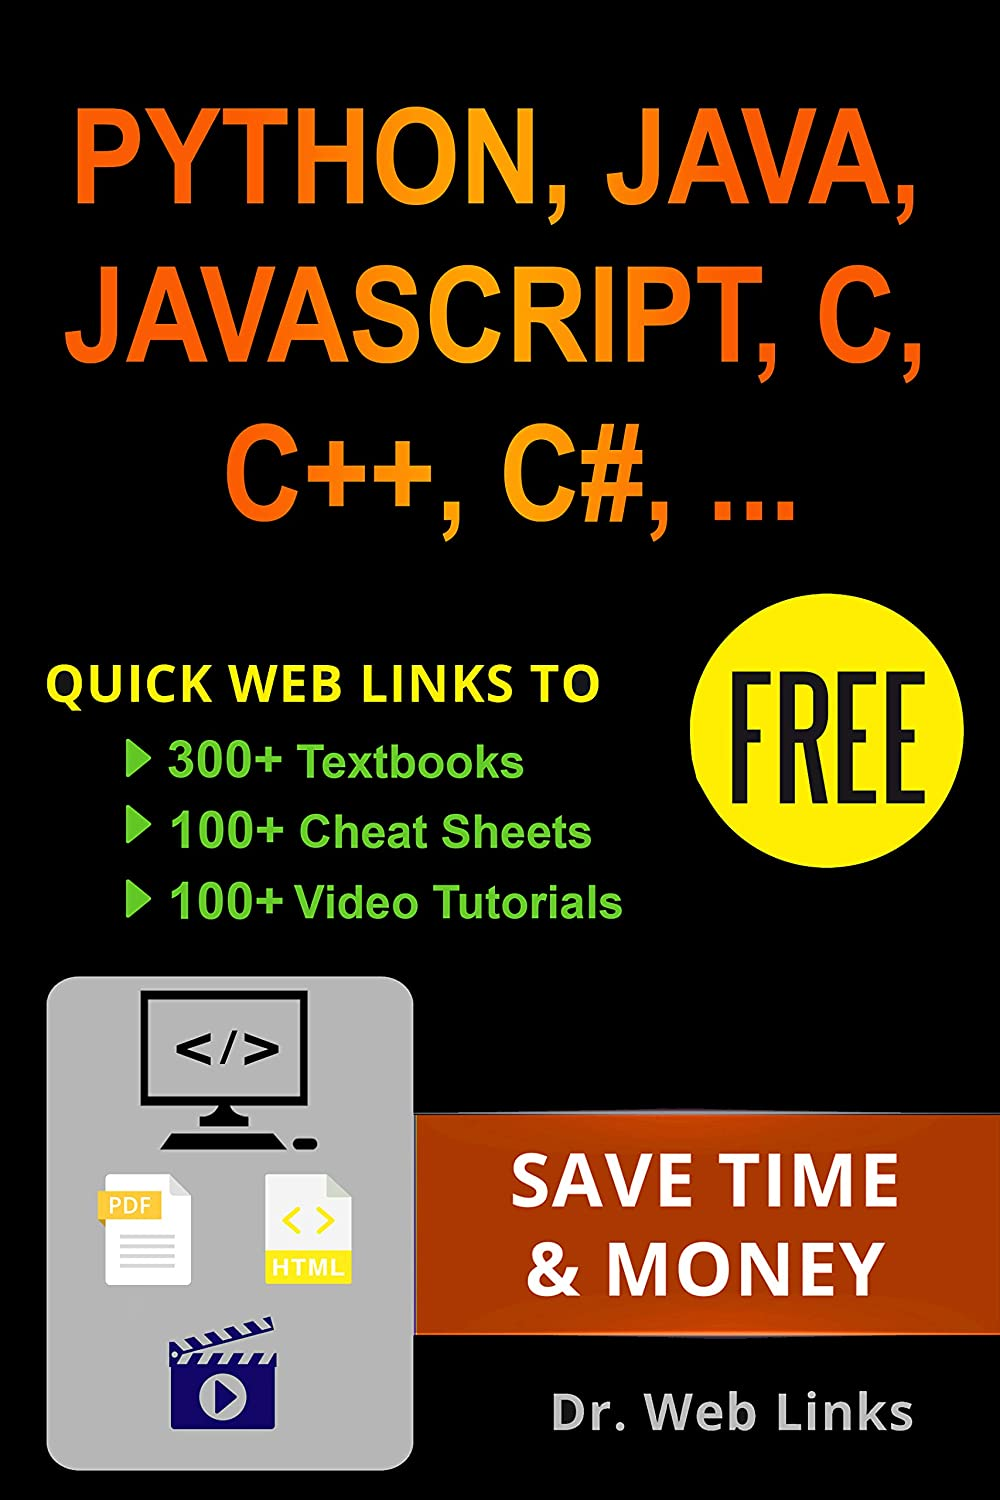 Learning Python, Java, JavaScript, C, C++, C#, CSS, HTML